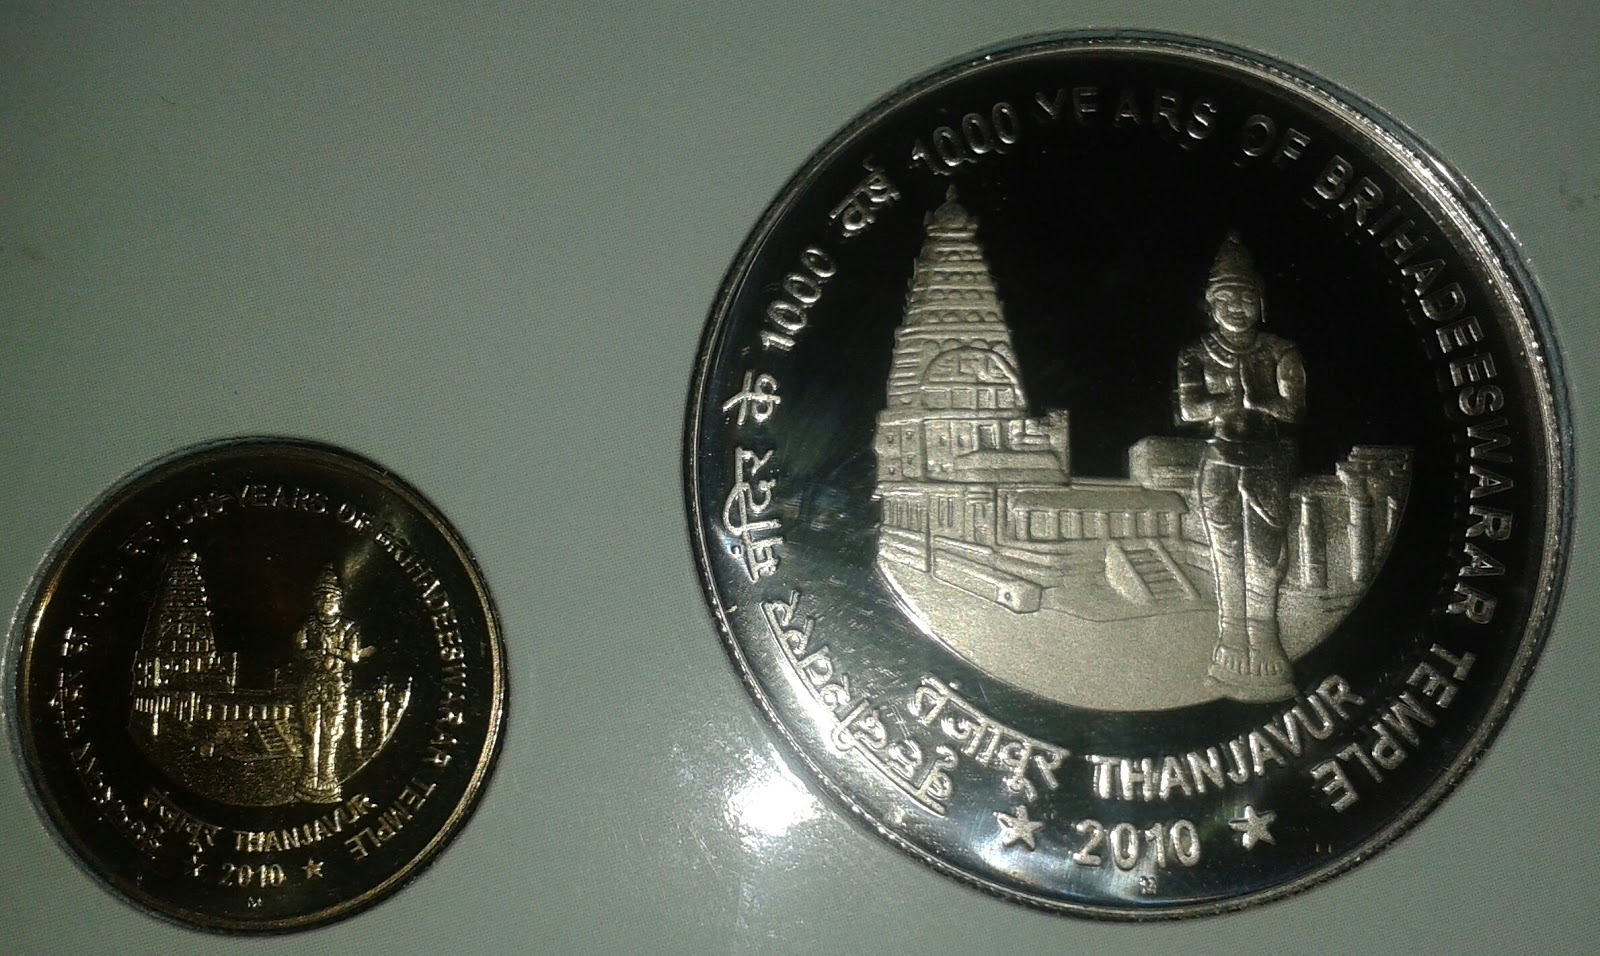 GOD OF KINGS: 1000 Rs. Indian Coin